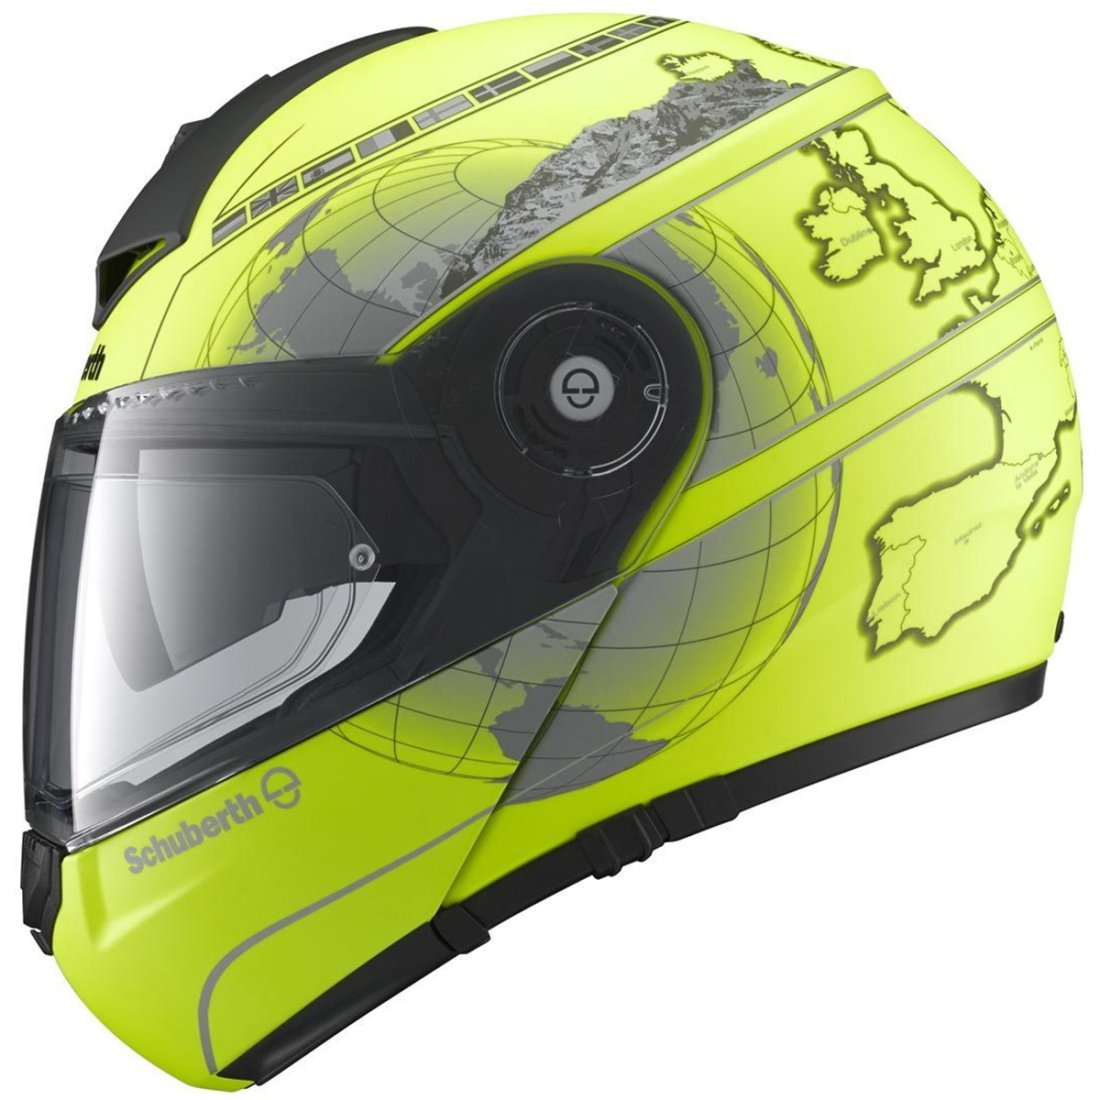 schuberth c3 pro europe fluo yellow helmet motocard. Black Bedroom Furniture Sets. Home Design Ideas